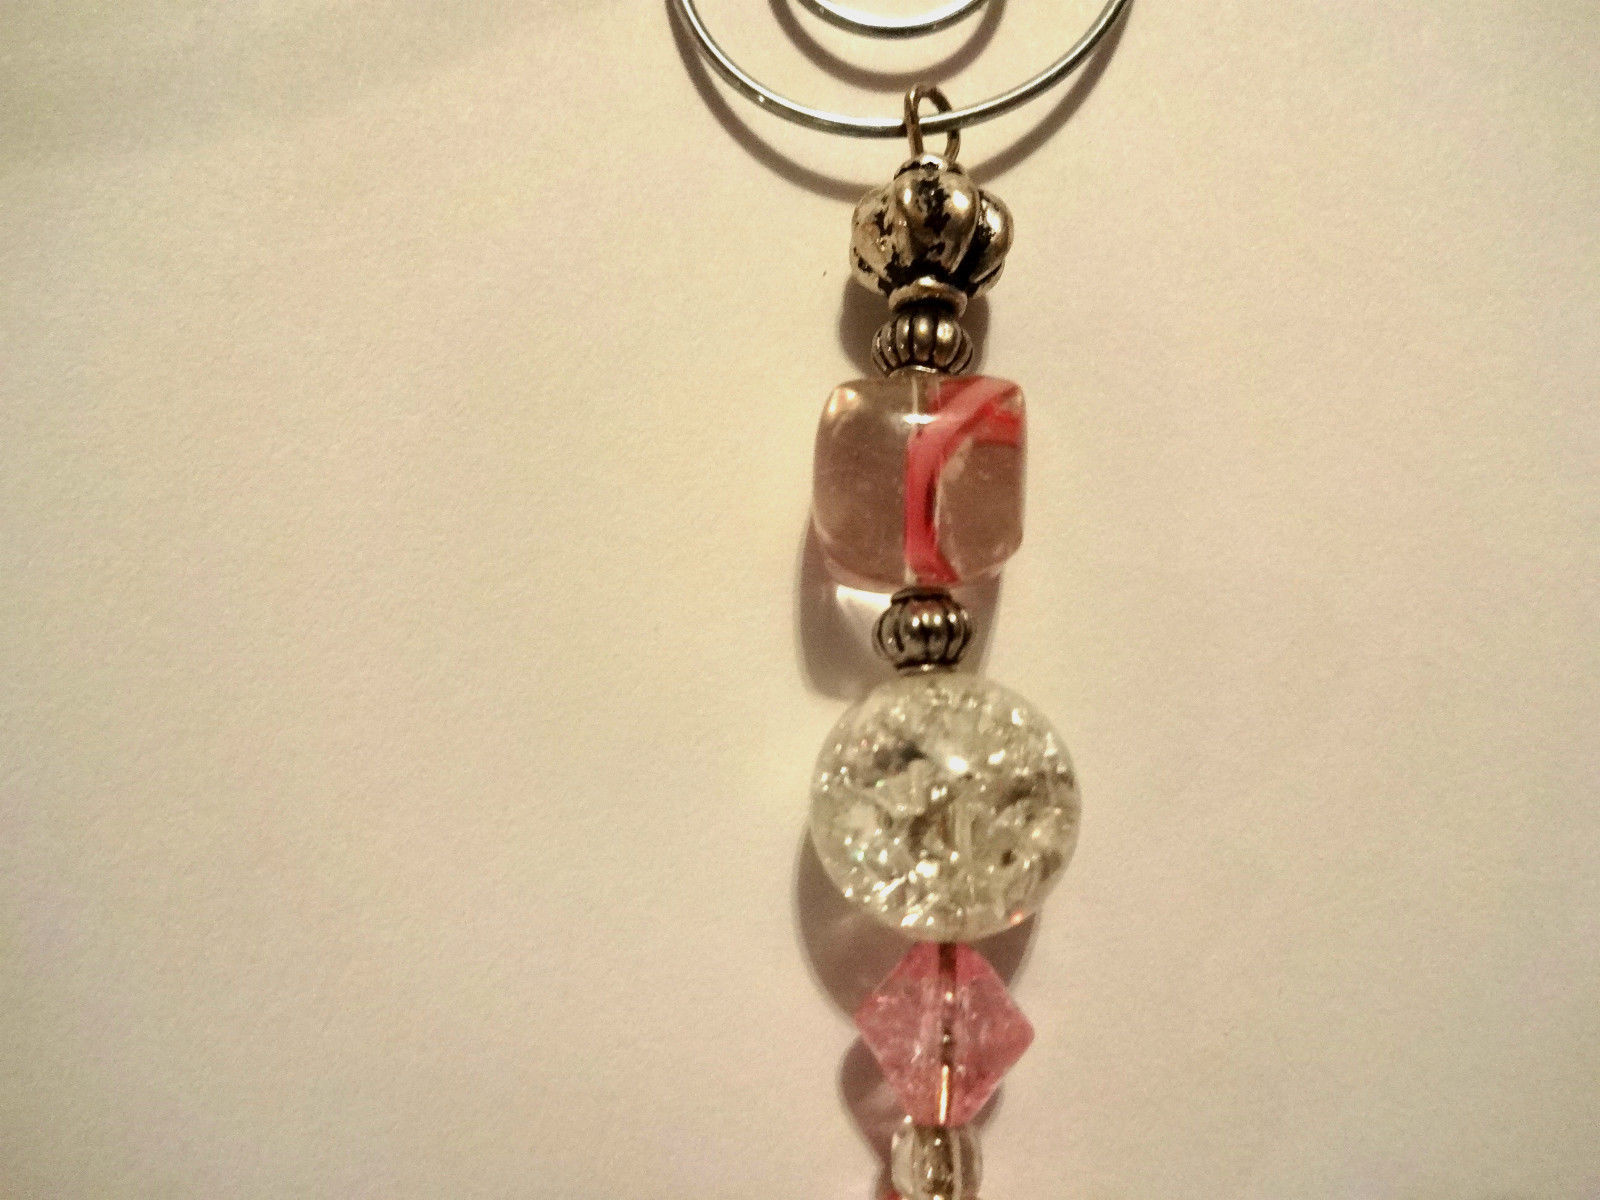 Hand Crafted Pink Breast Cancer Awareness Ornament With Silver Hope Ribbon Charm image 3